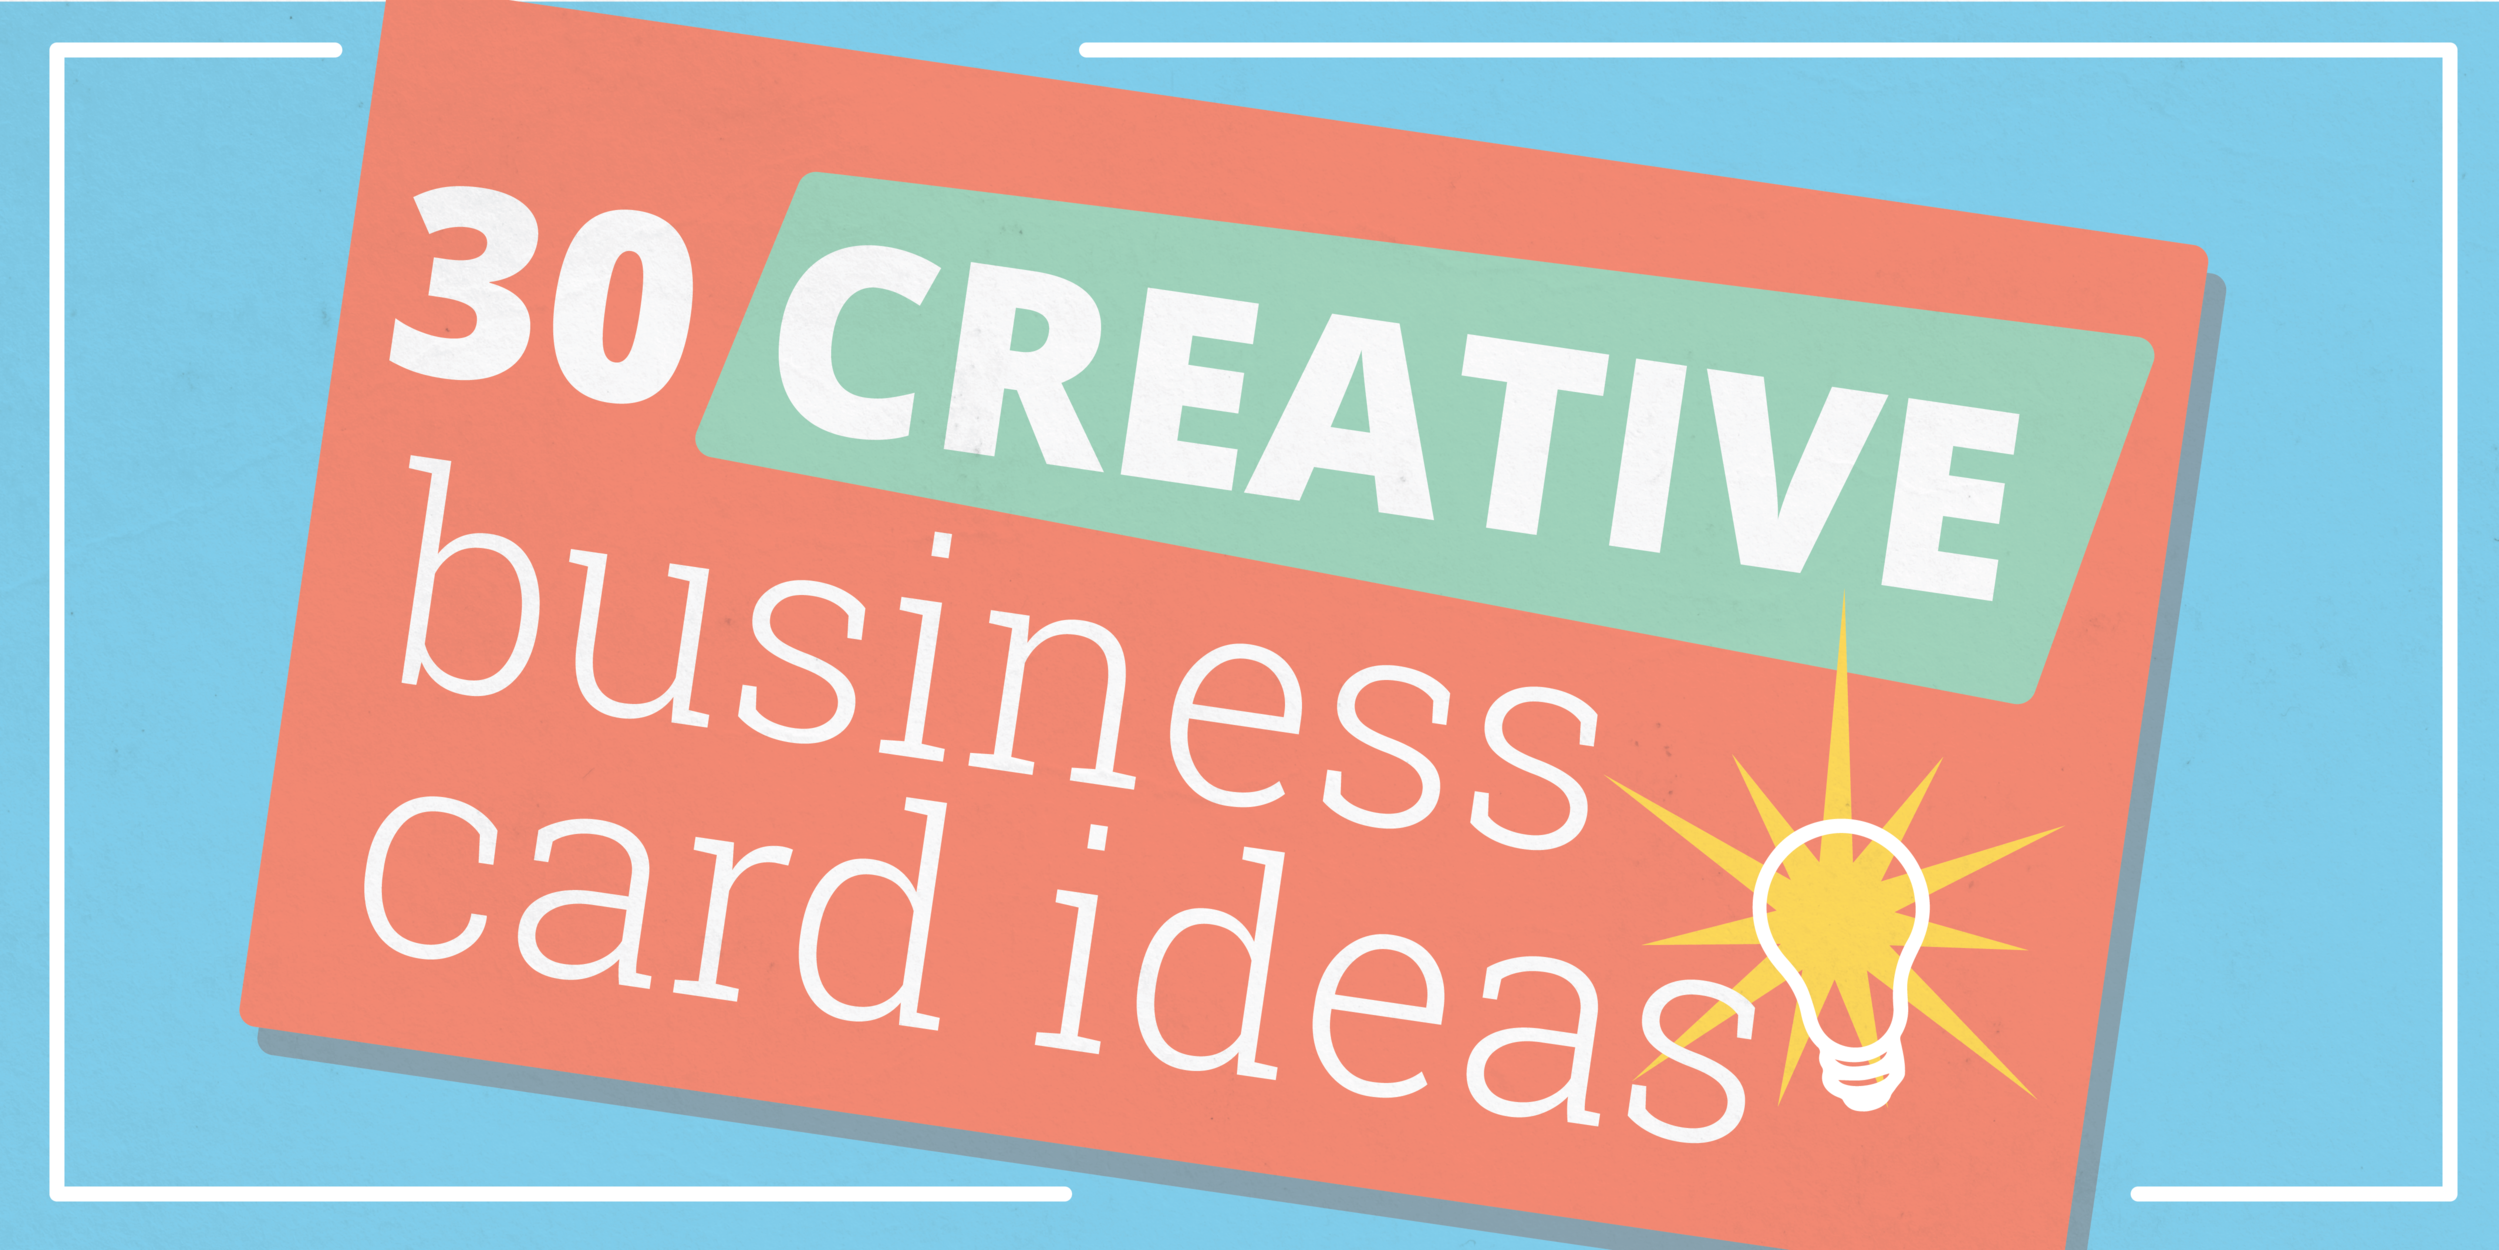 30 creative business card ideas designs lucidpress colourmoves